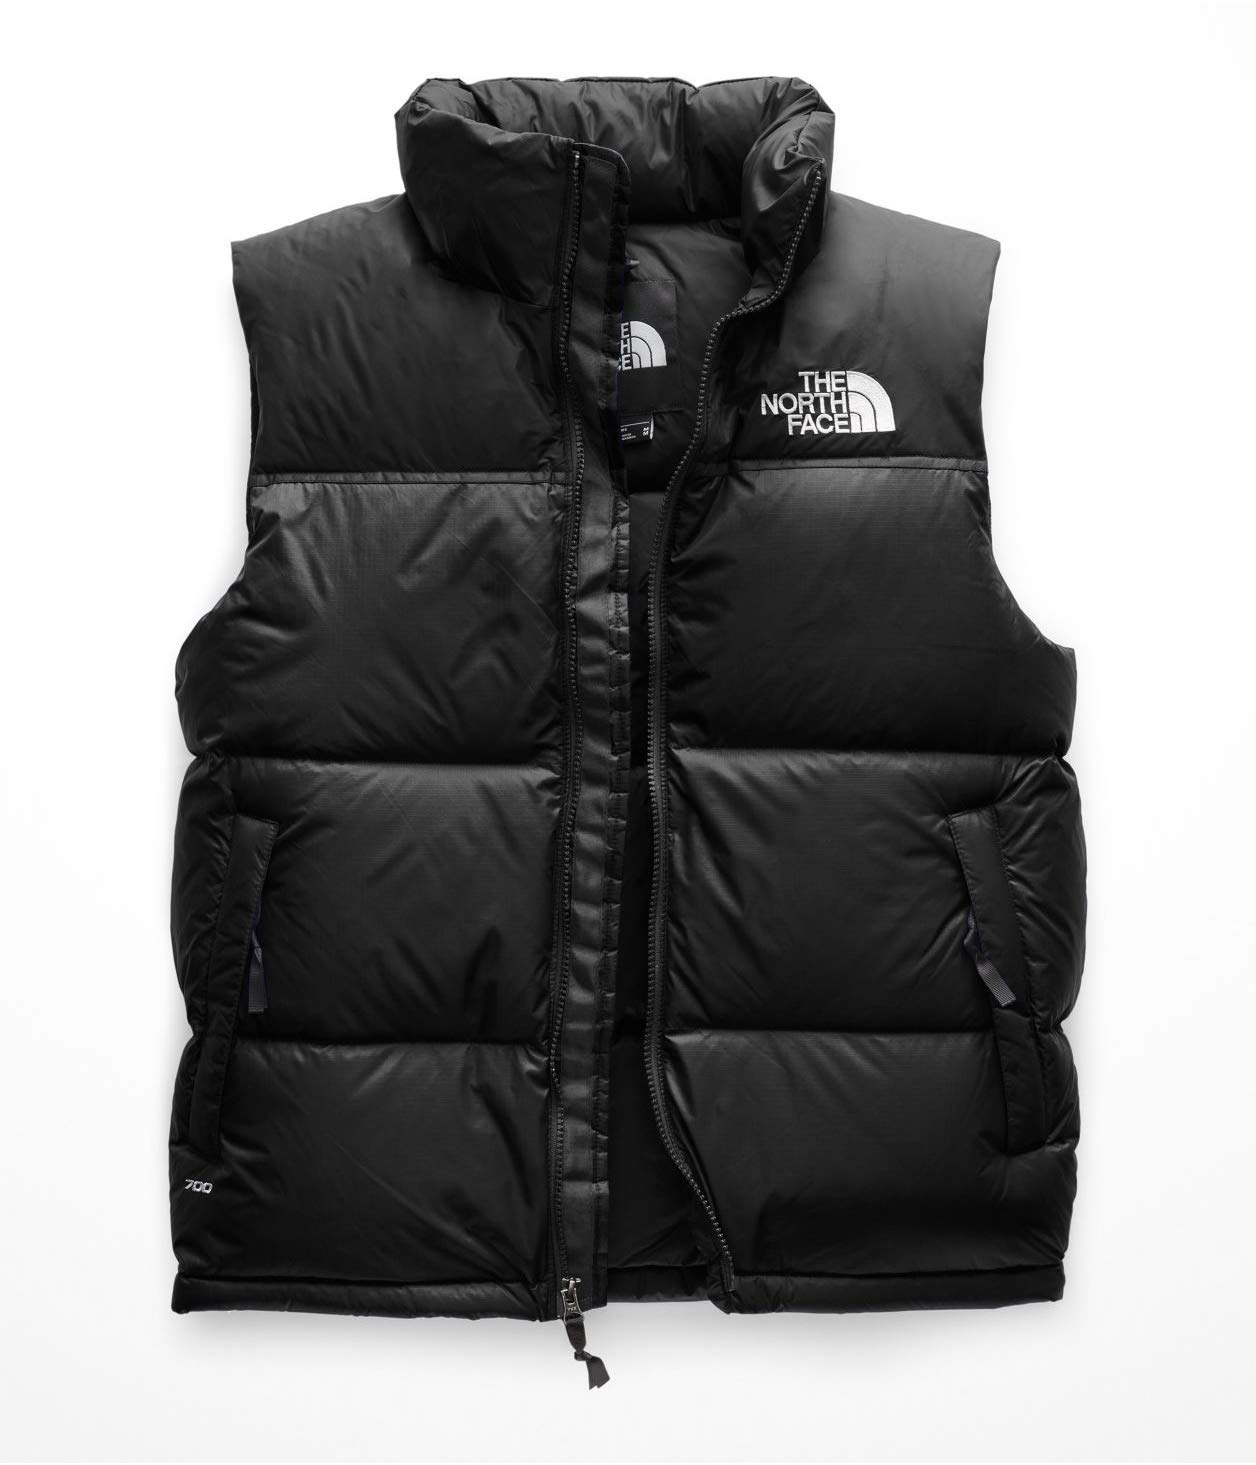 cdc42a003a3a Amazon.com  The North Face 1996 Retro Nuptse Vest - Men s  Sports   Outdoors